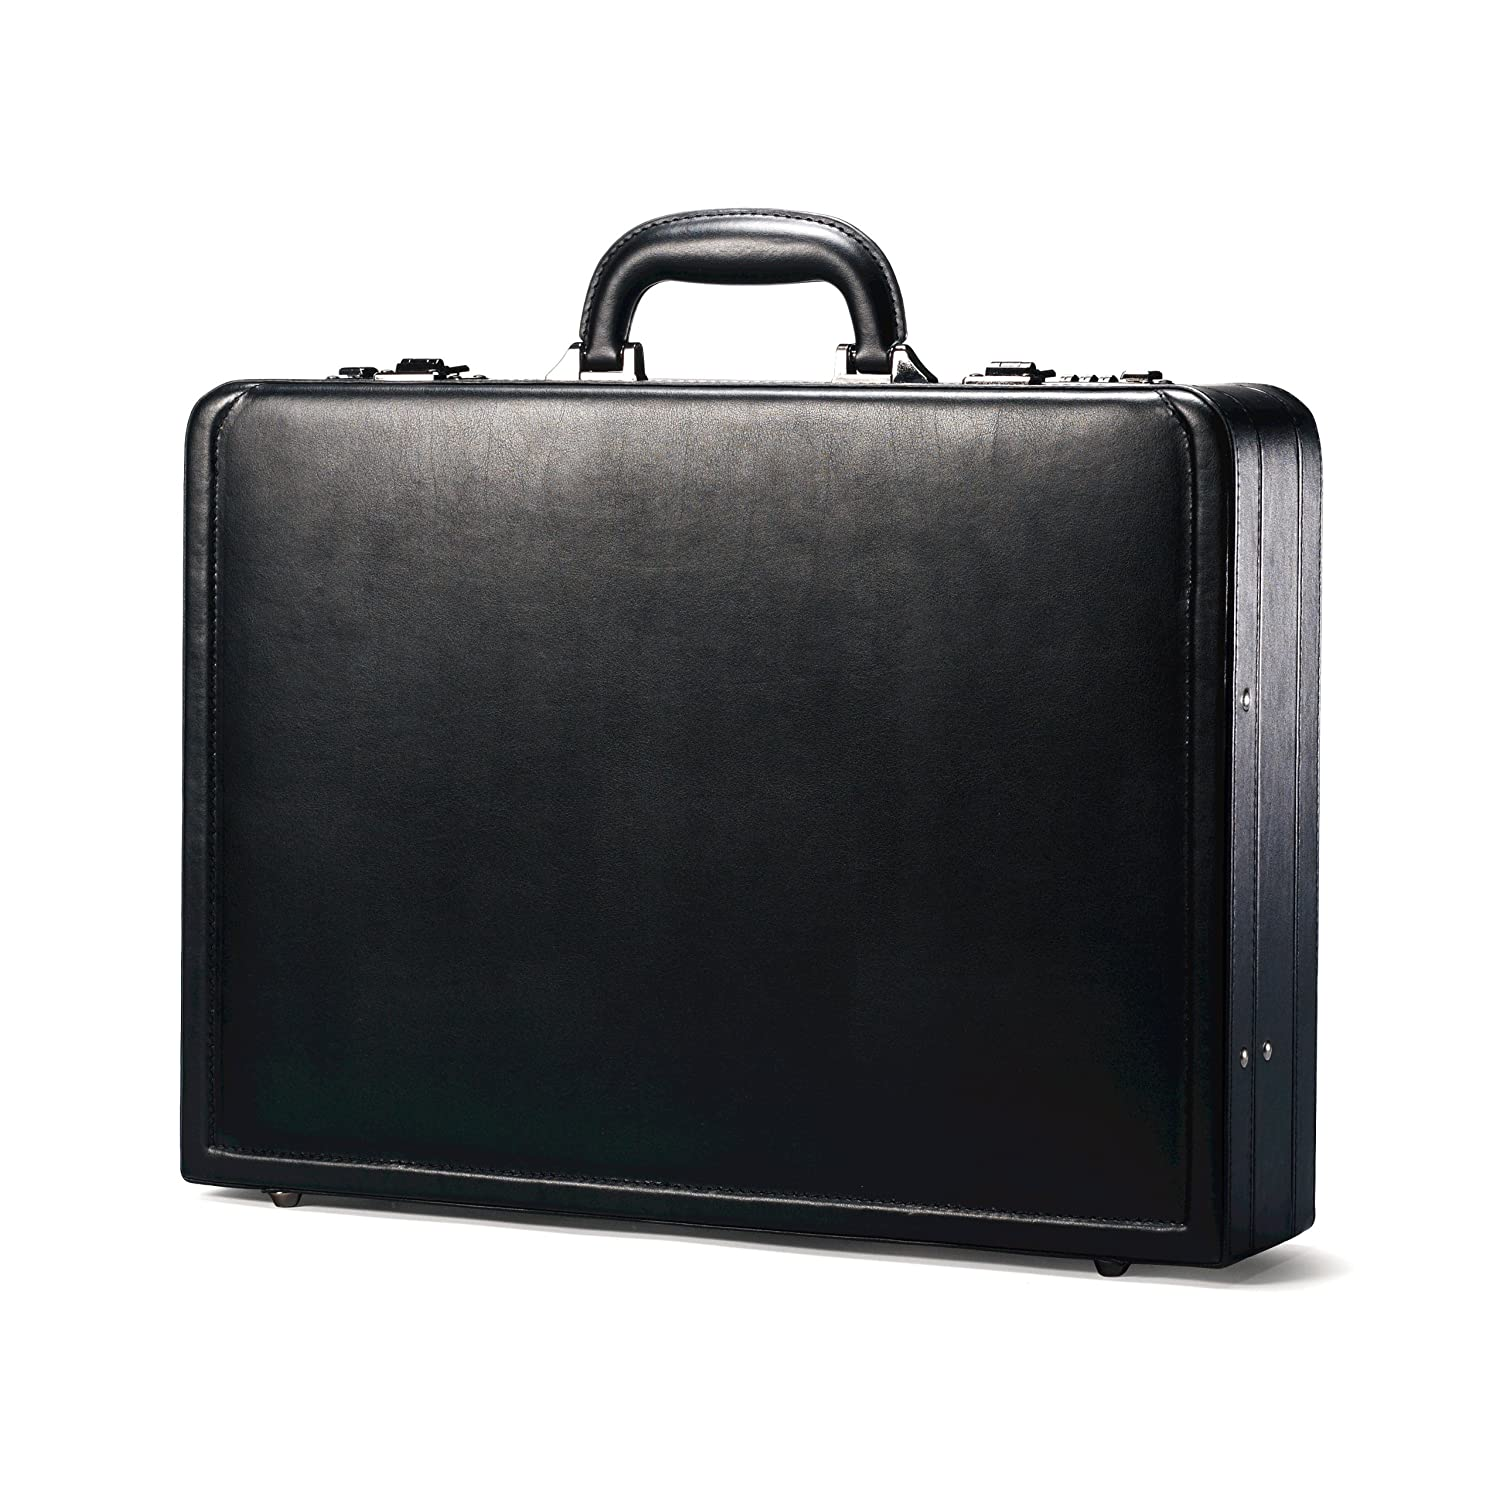 Samsonite Leather Attache Case